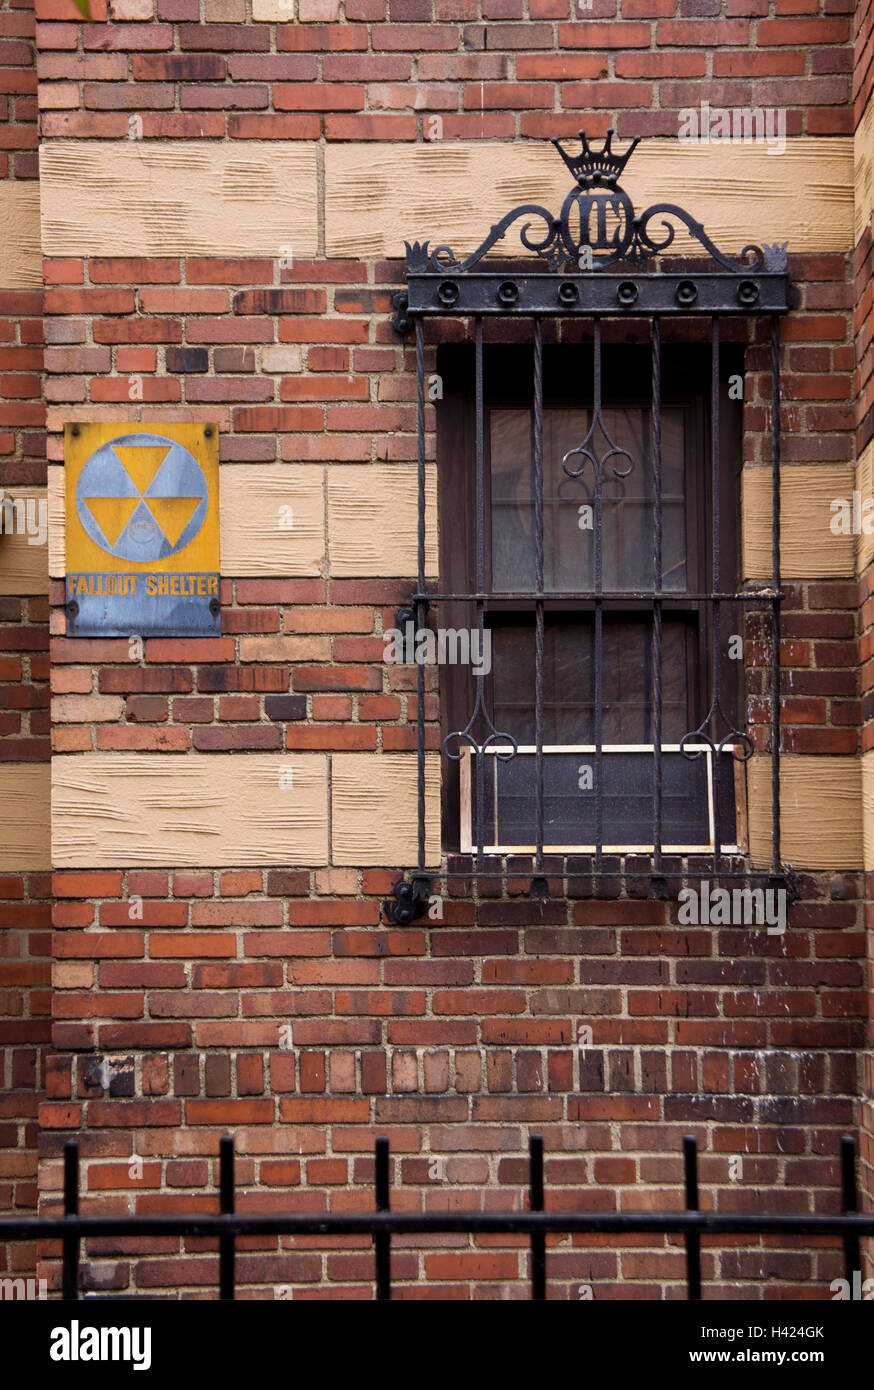 An ageing Fallout Shelter sign on an old building in Lower Manhattan, New York. Stock Photo